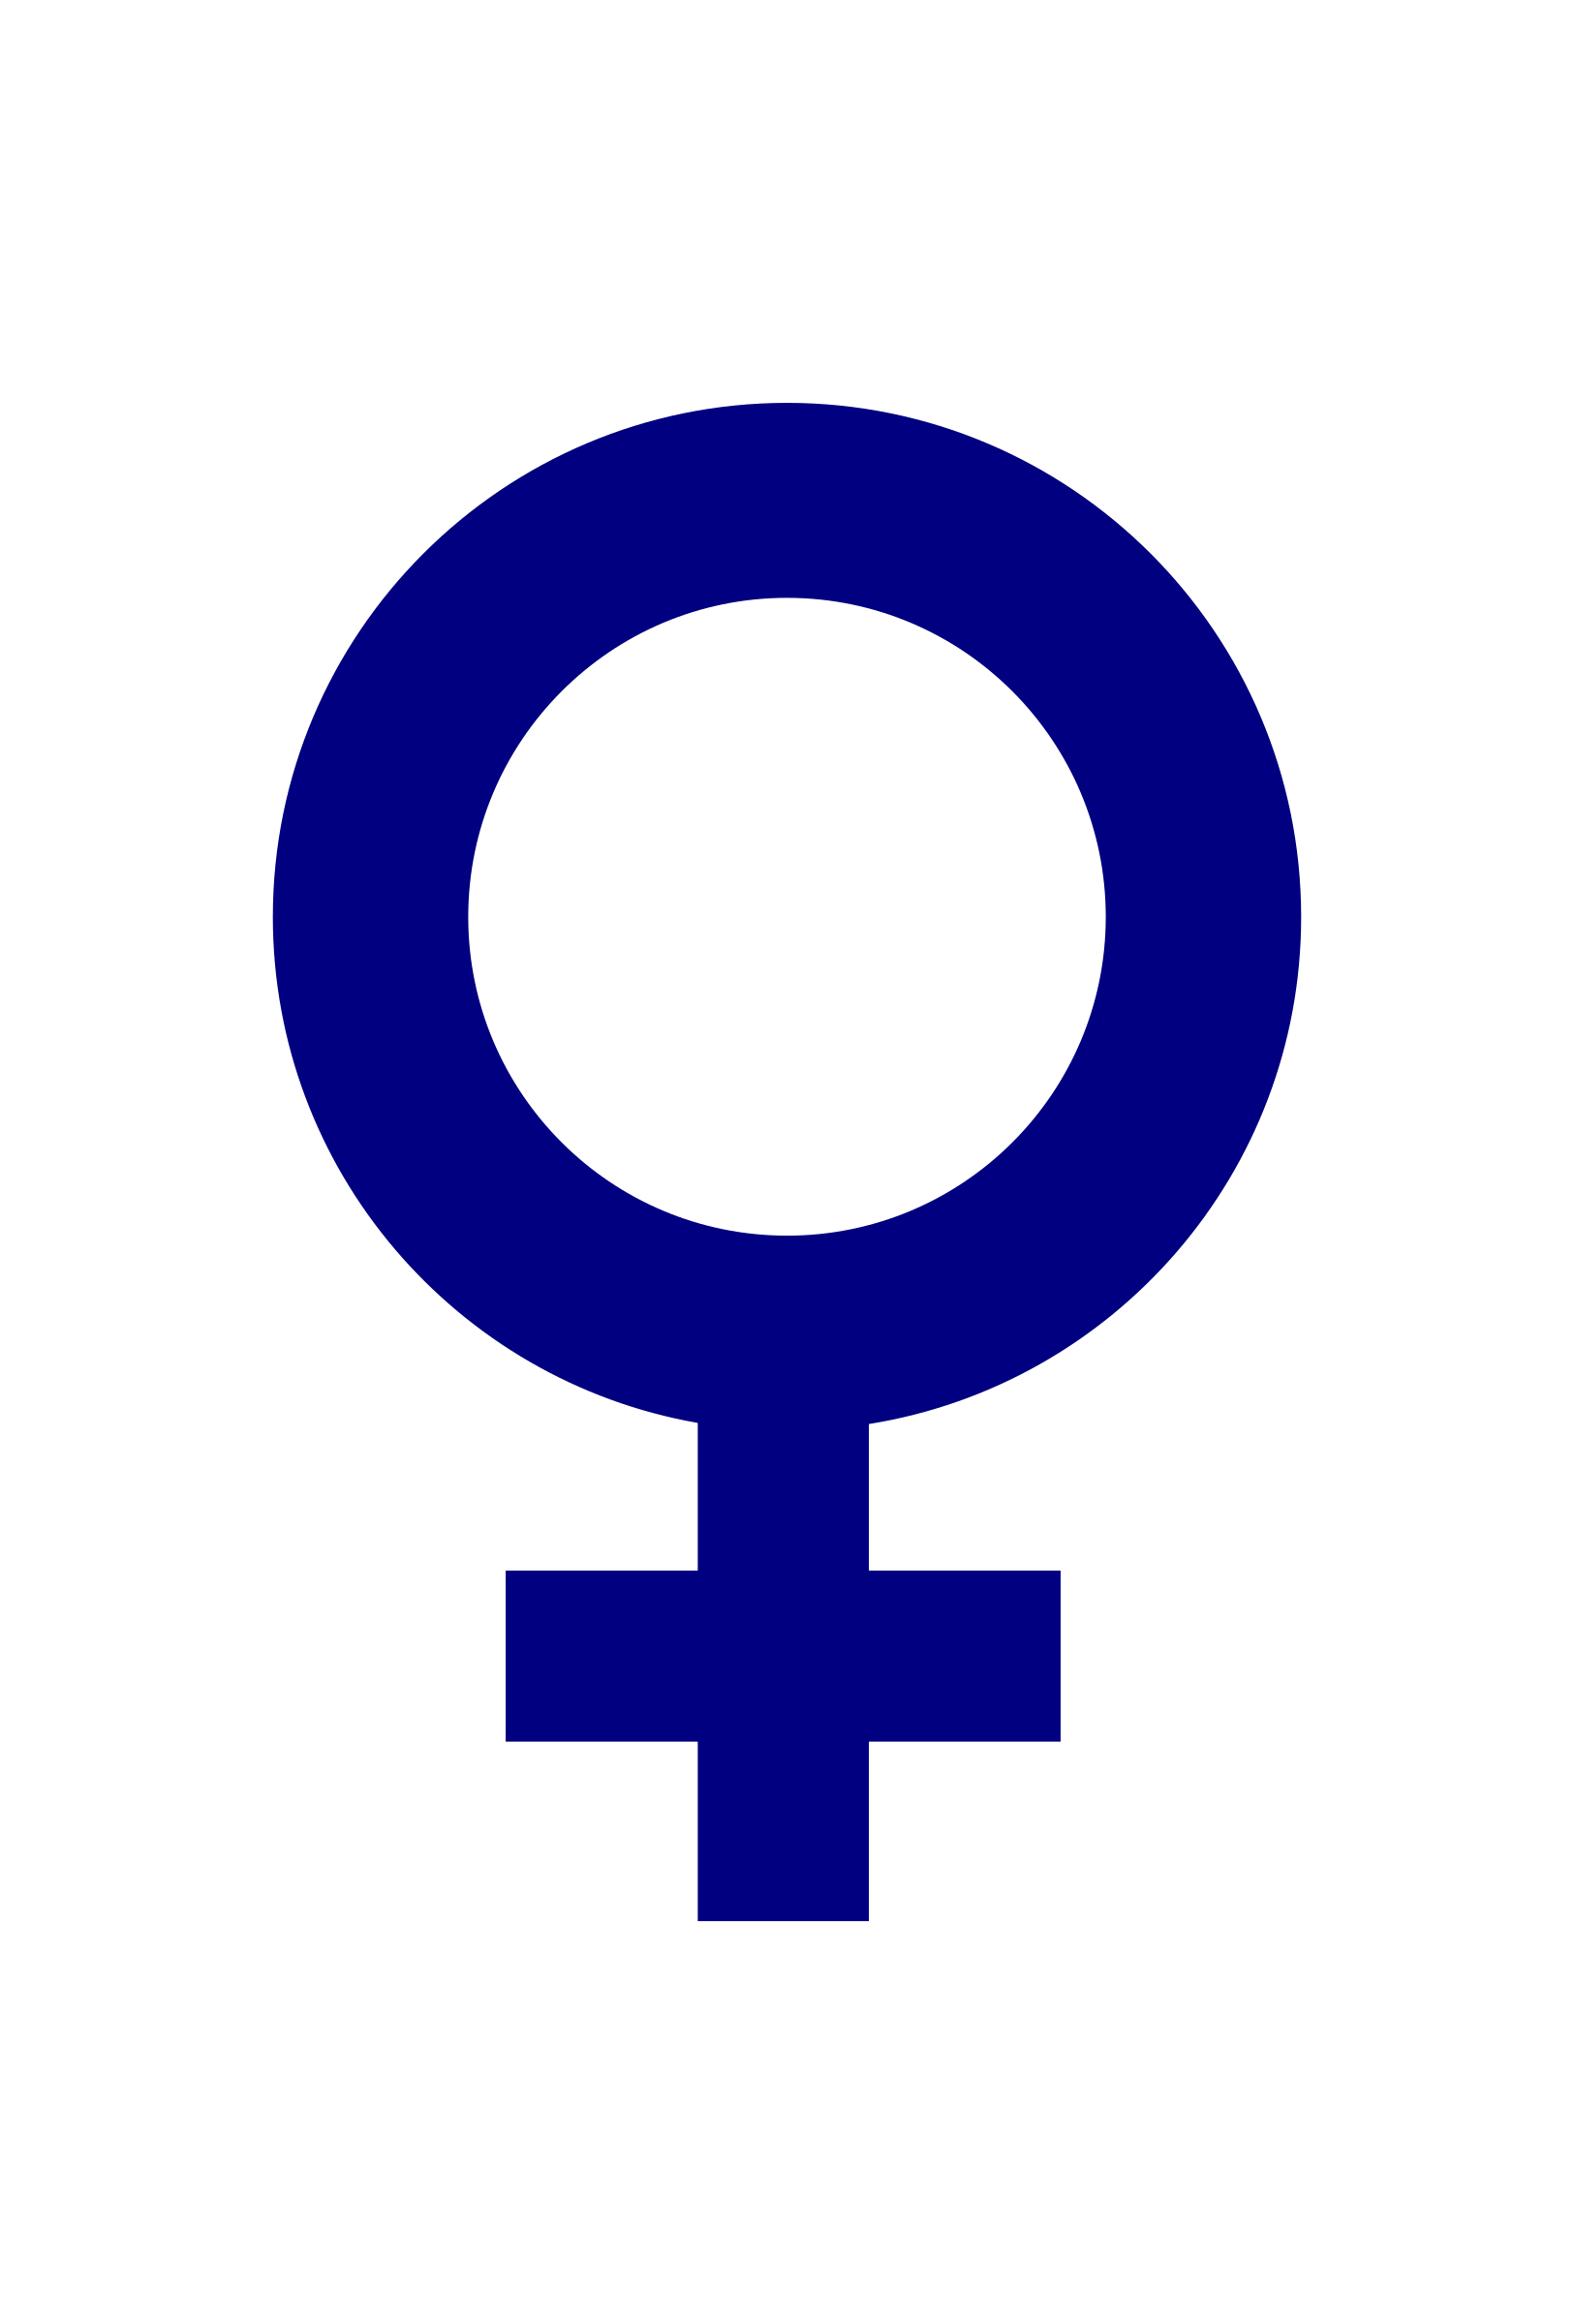 Girl symbol png. Female gender icons free